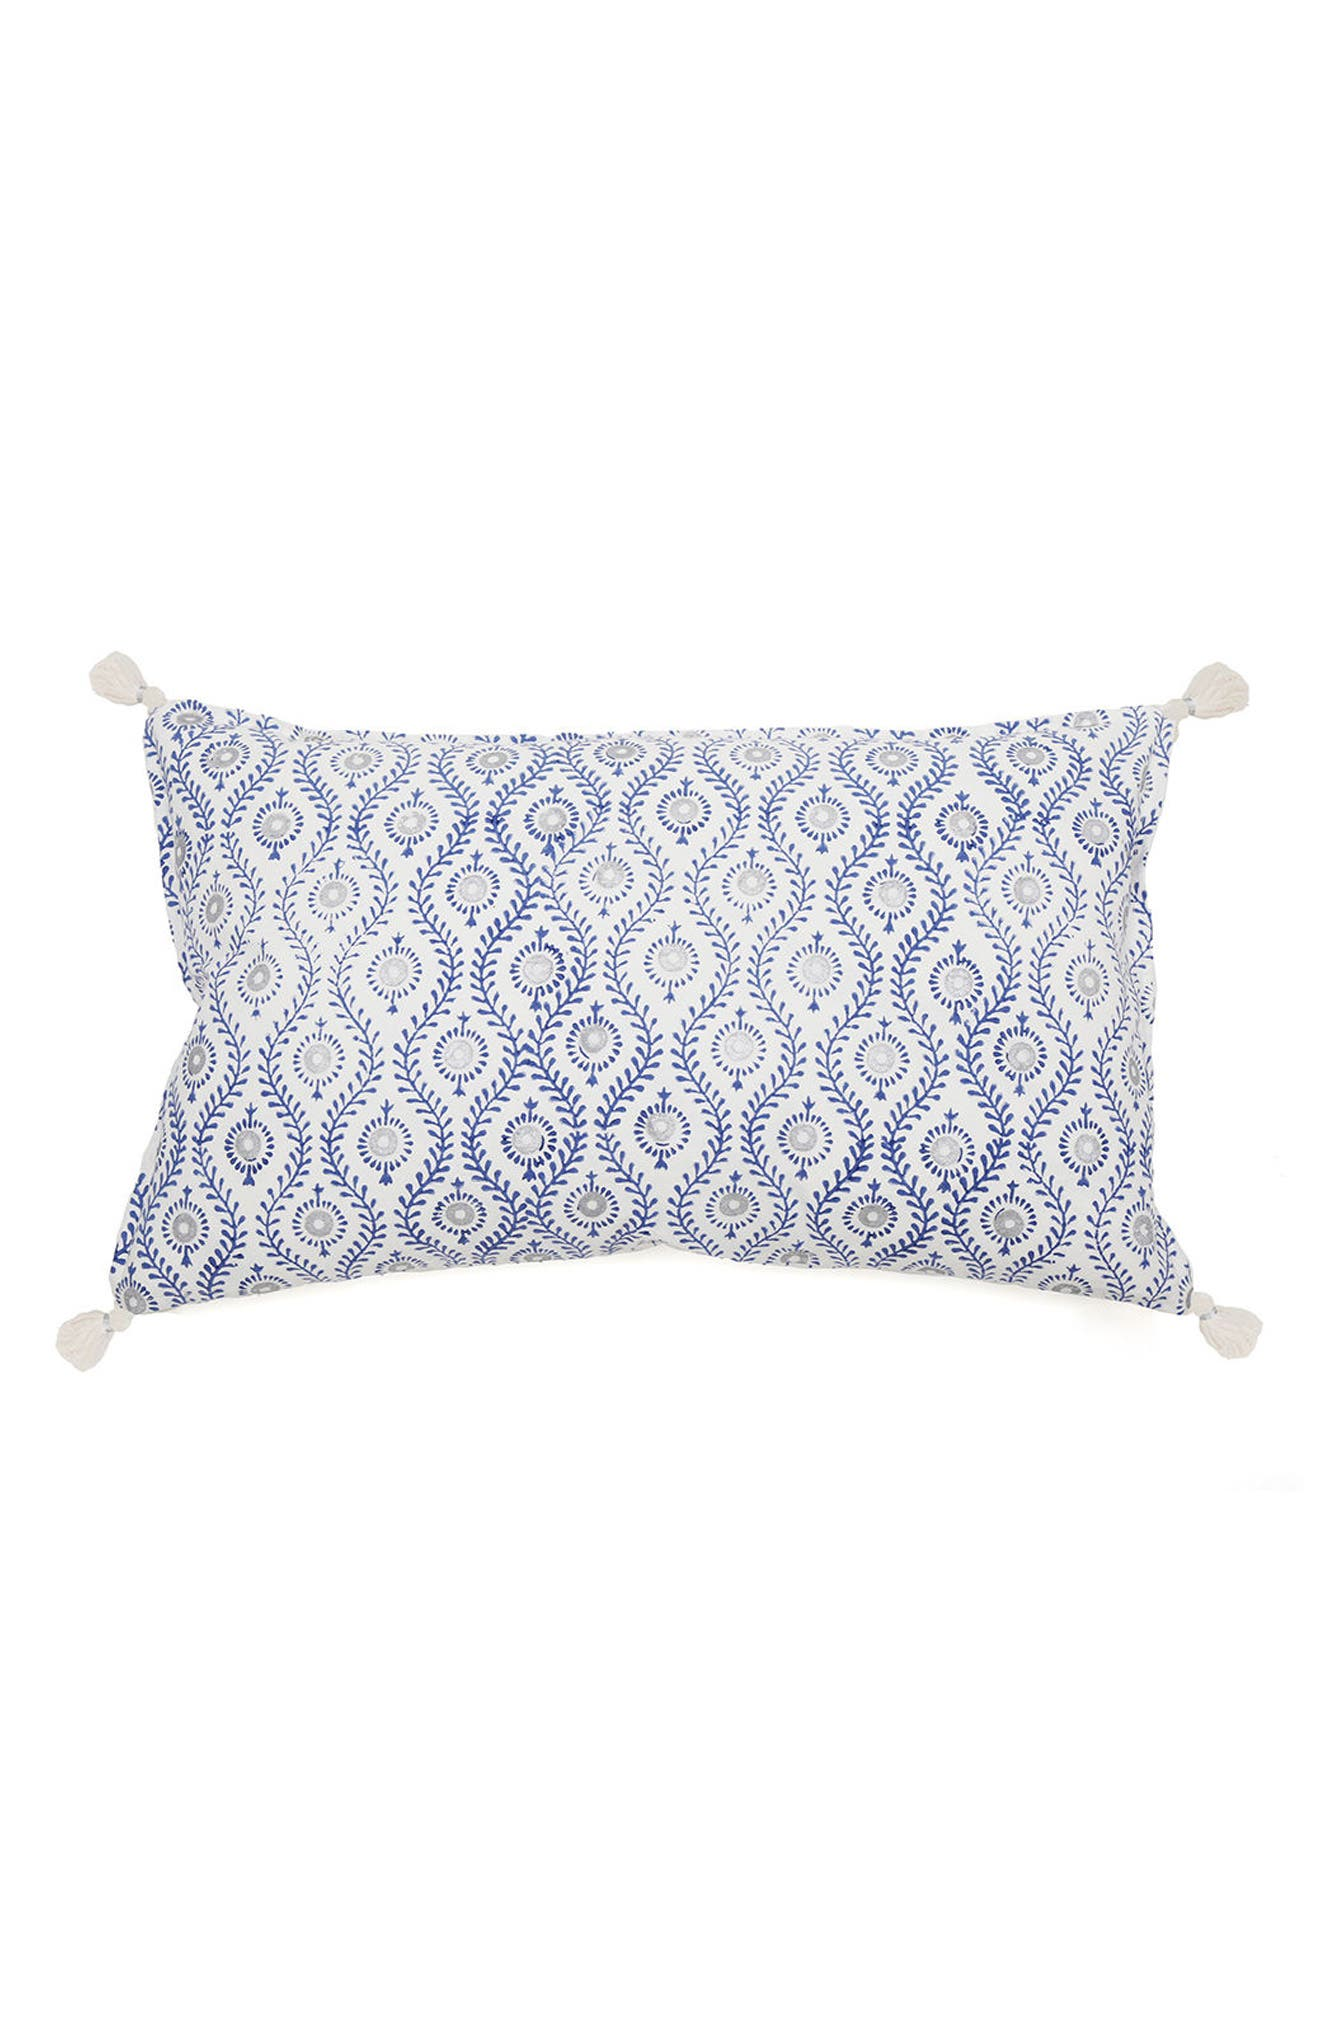 Alternate Image 1 Selected - Pom Pom at Home Dali Accent Pillow